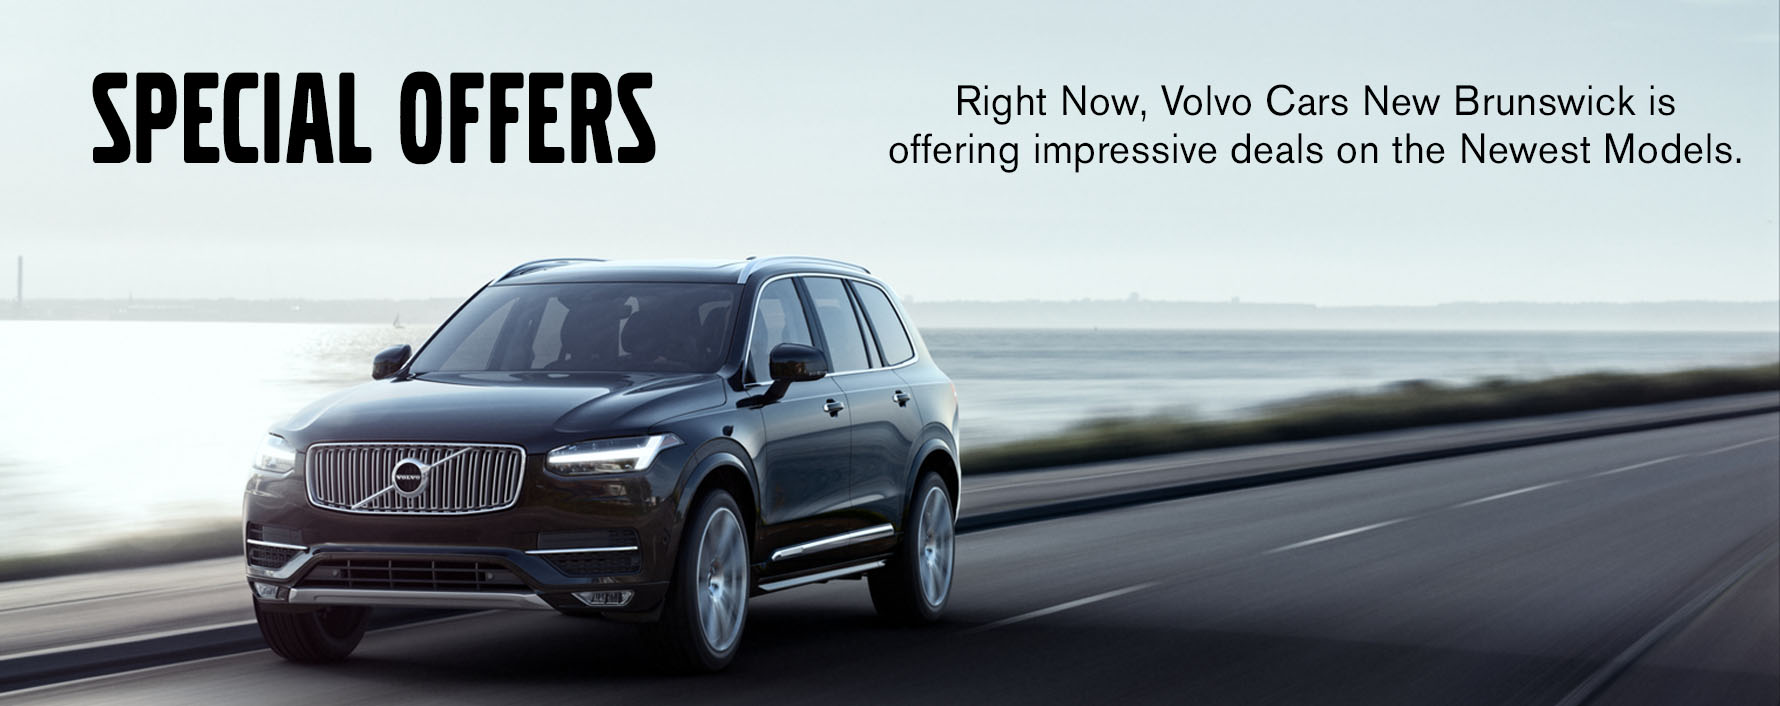 New Vehicles Special Offers Volvo Cars New Brunswick